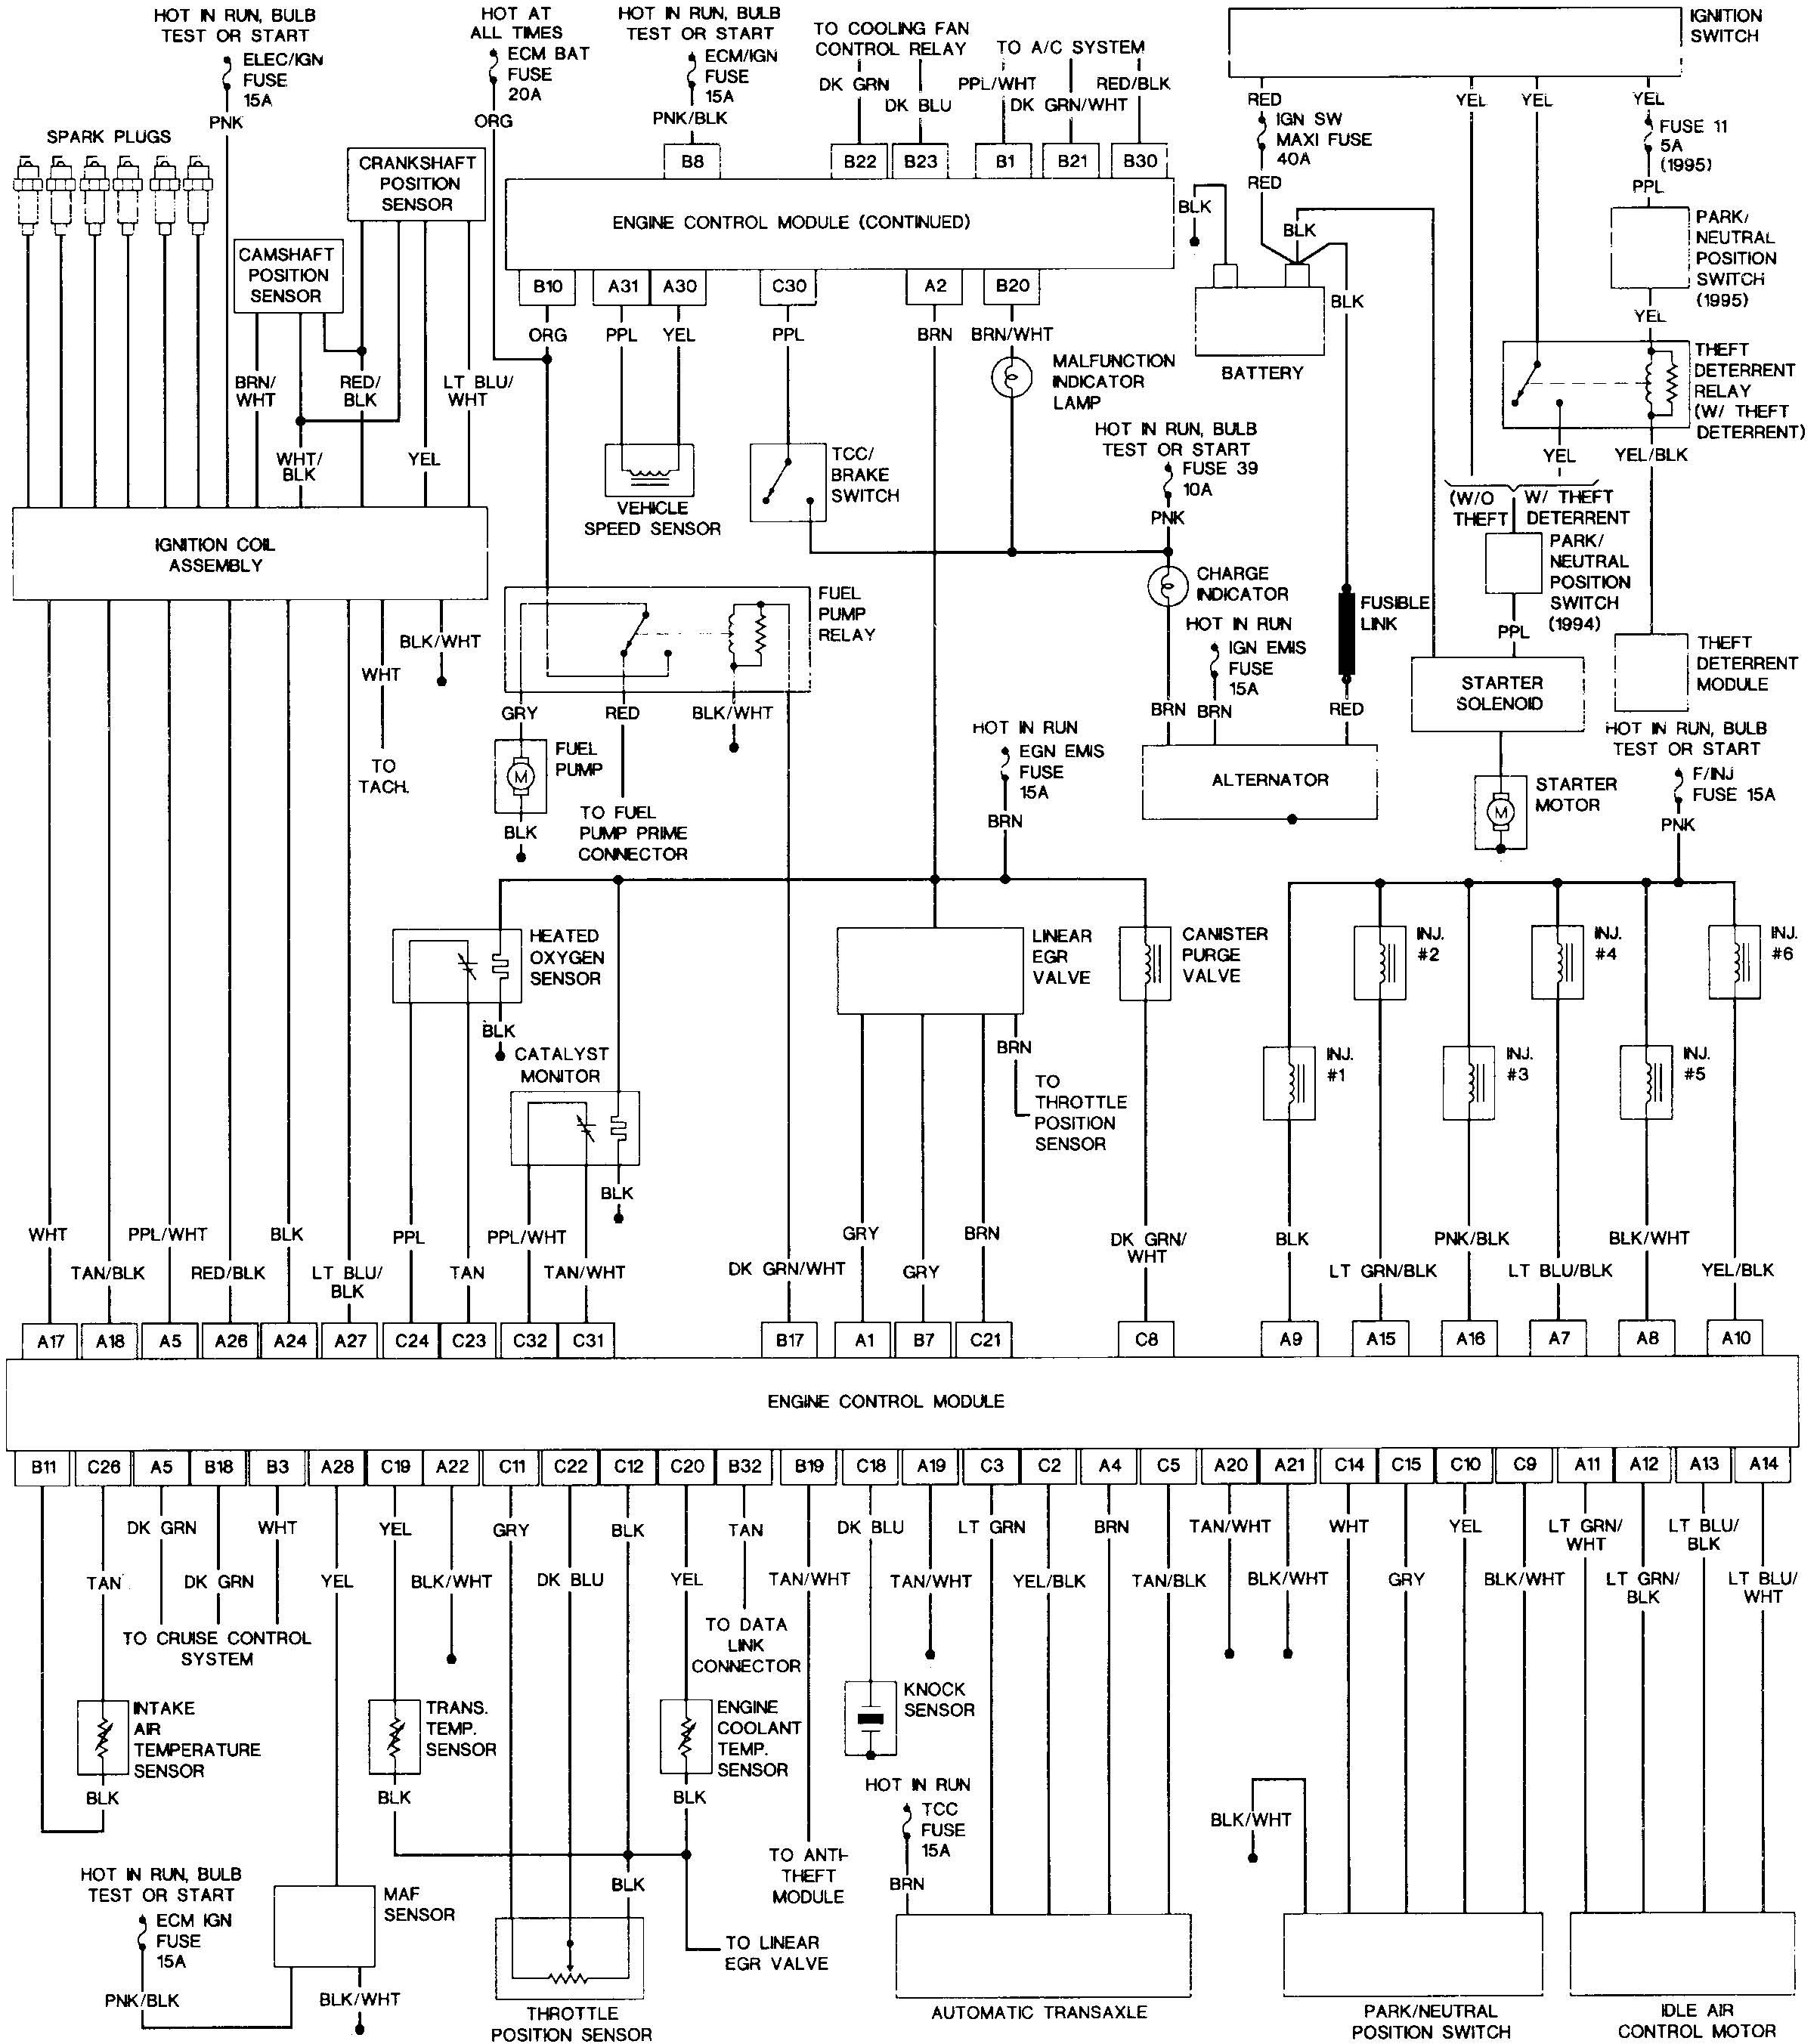 2006 Jeep Cherokee Engine Diagram Wiring Library Grand 2000 Radio Elvenlabs Of